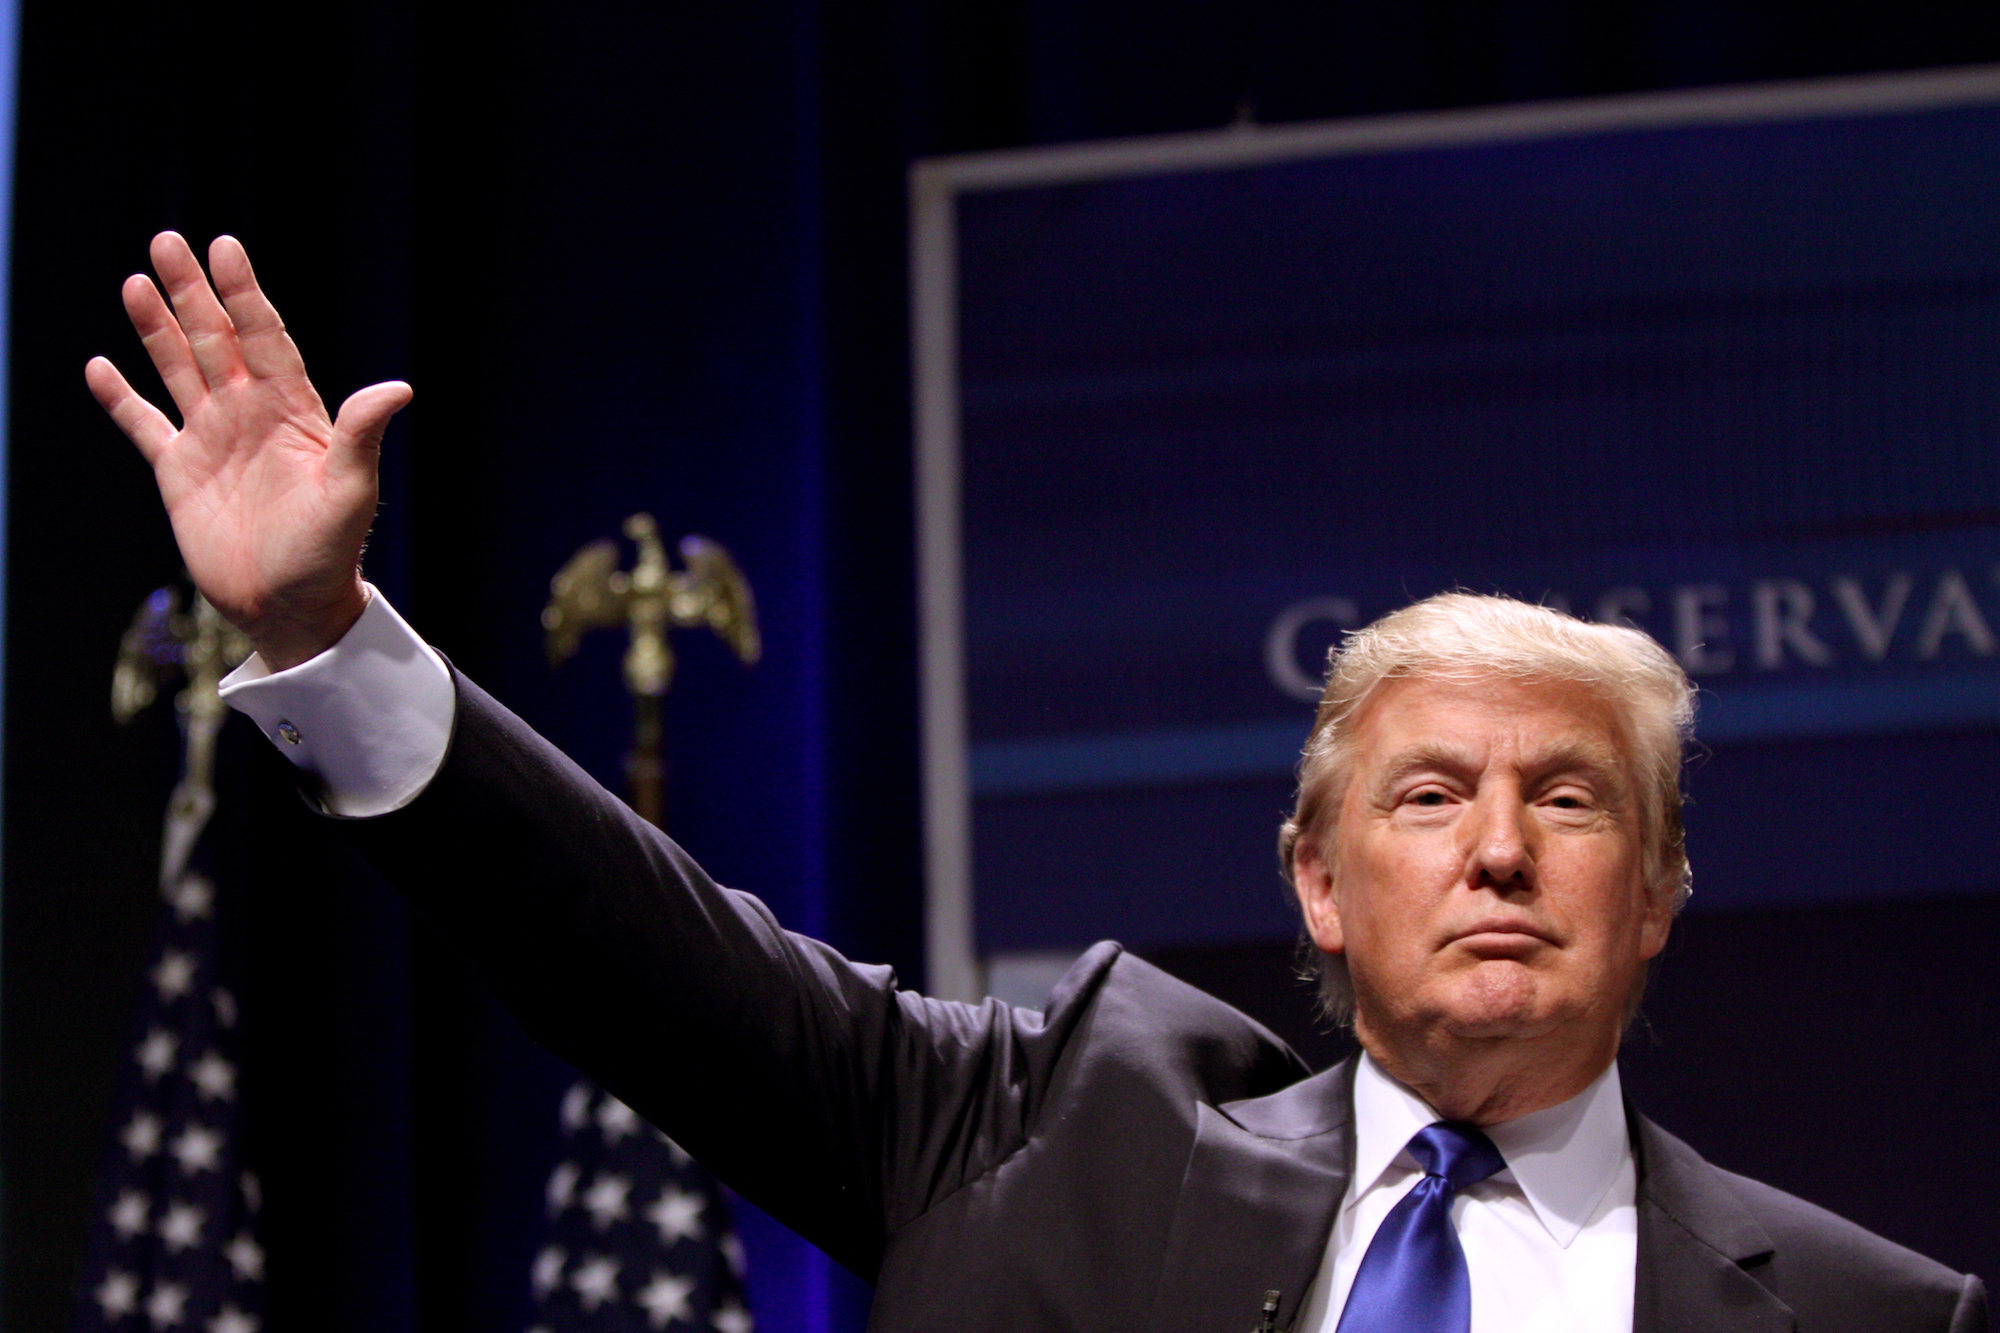 If Trump wins reelection, his management agenda will emphasize data, emerging tech